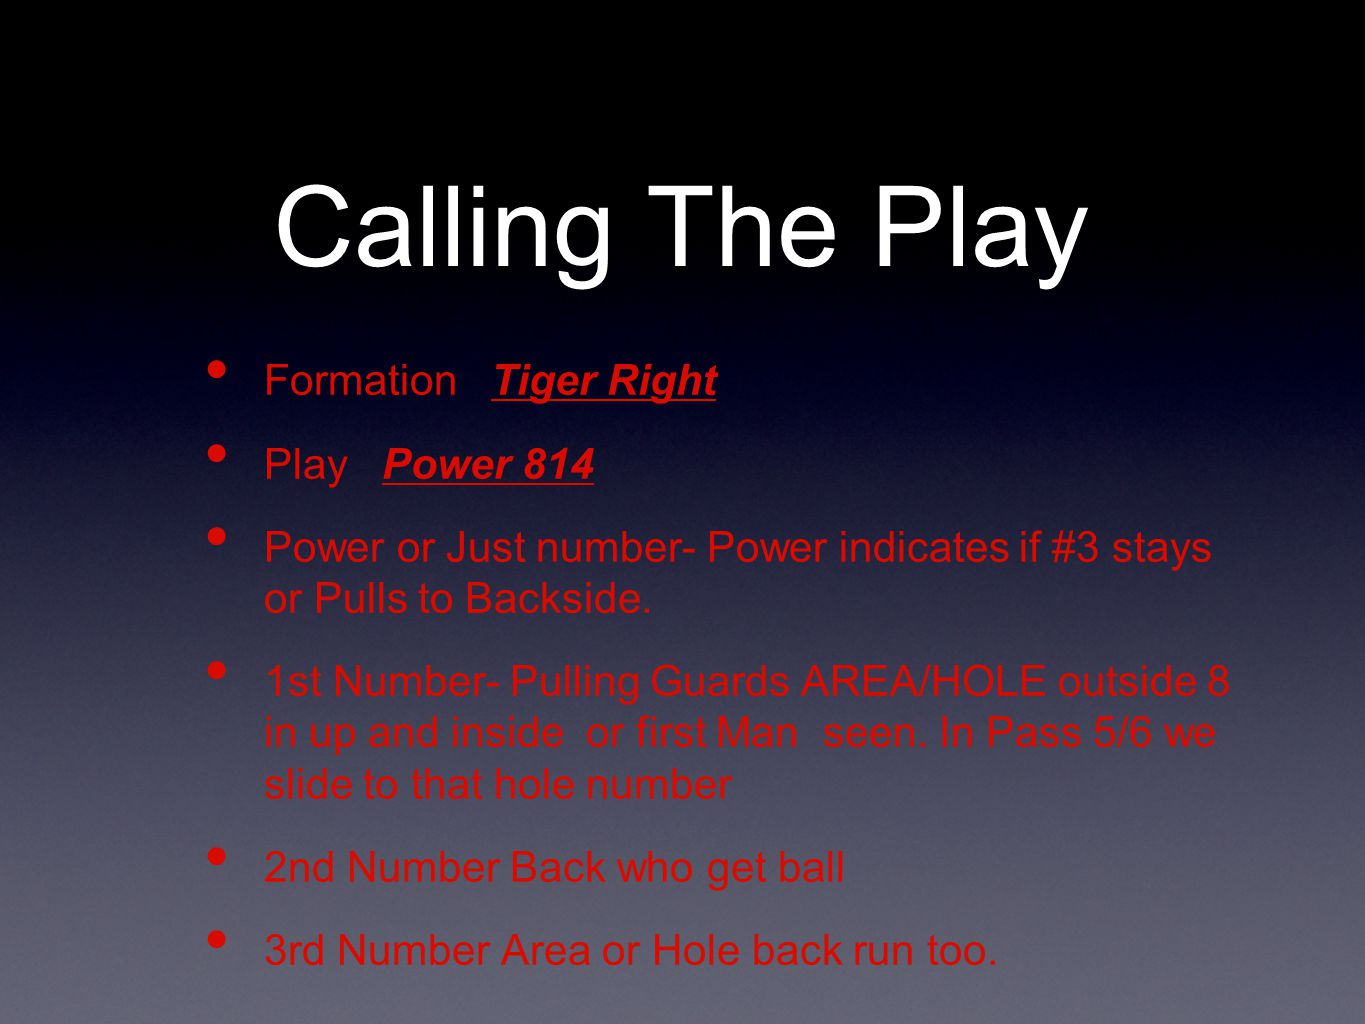 Calling The Play Formation Tiger Right Play Power 814 Power or Just number- Power indicates if #3 stays or Pulls to Backside. 1st Number- Pulling Guar